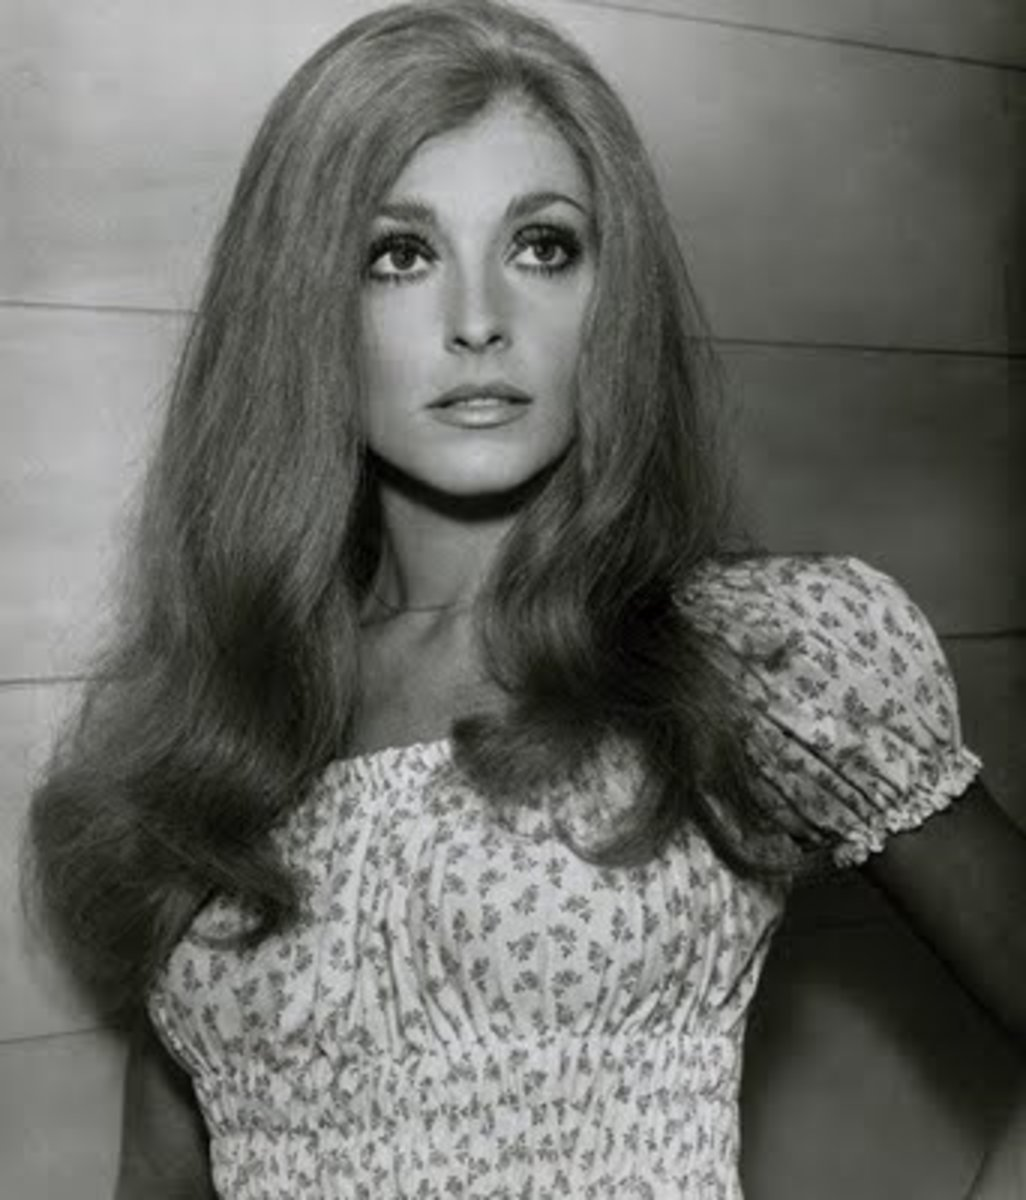 Sharon Tate Roman Polanski Amp The House Hubpages